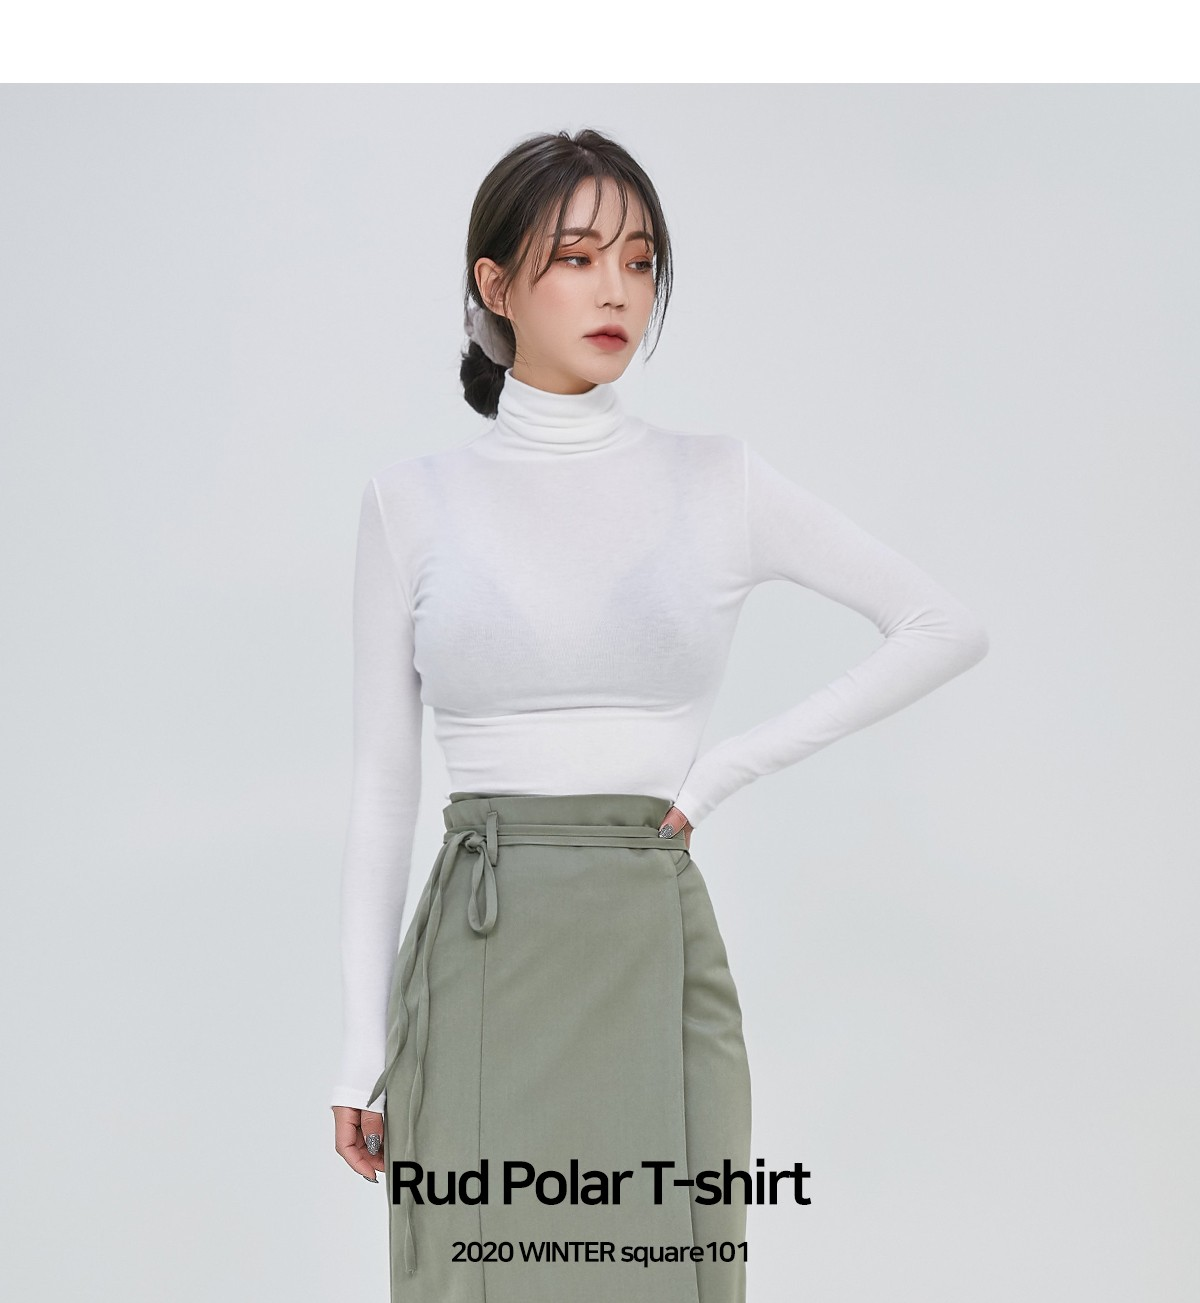 Rudd Turtleneck T-shirt